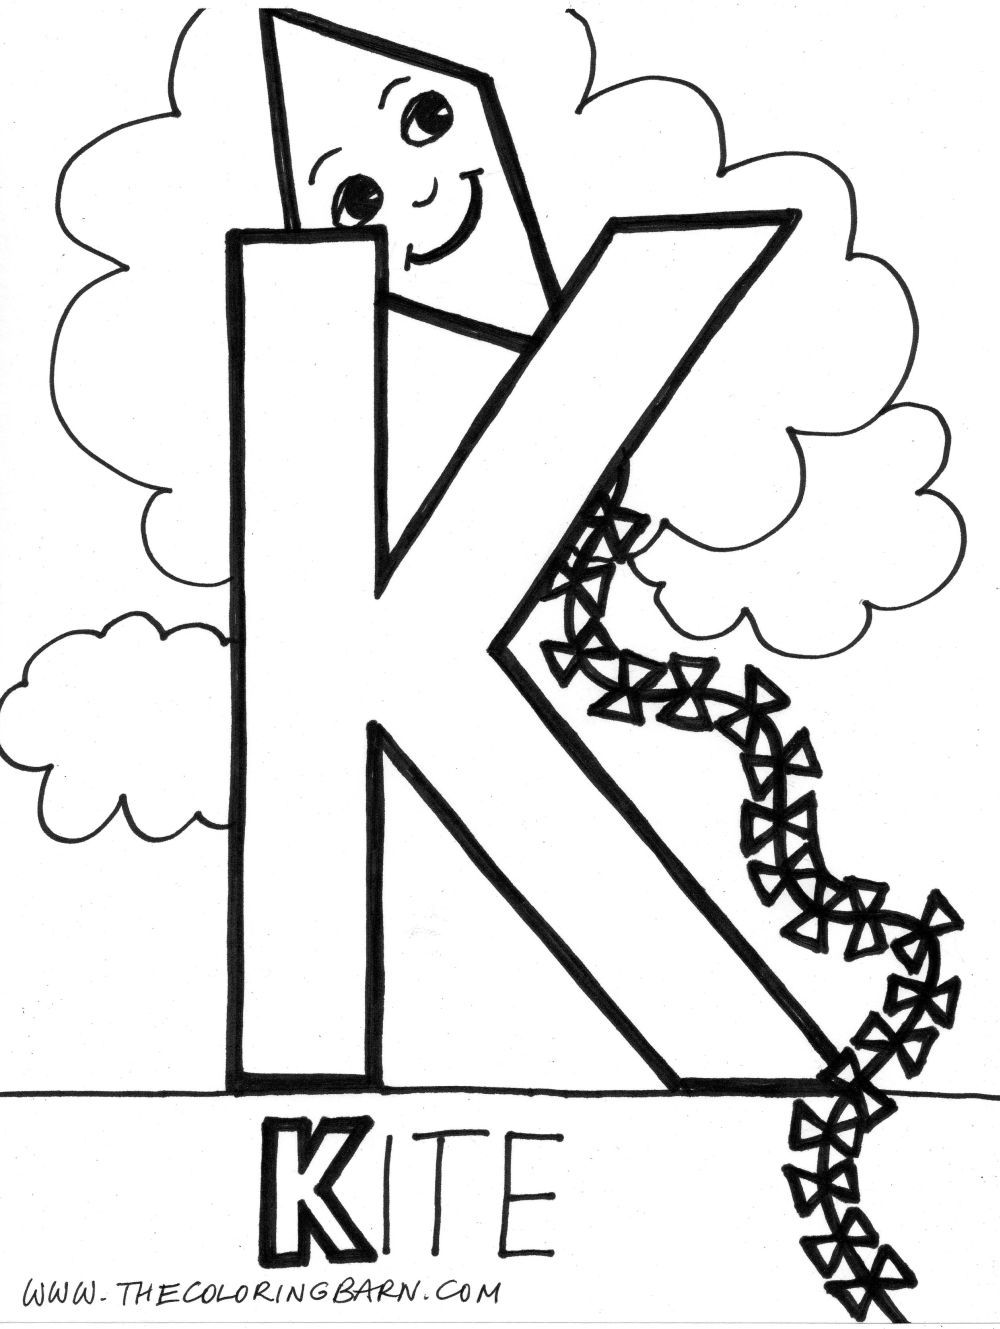 K for Kite Alphabet coloring pages, Alphabet coloring